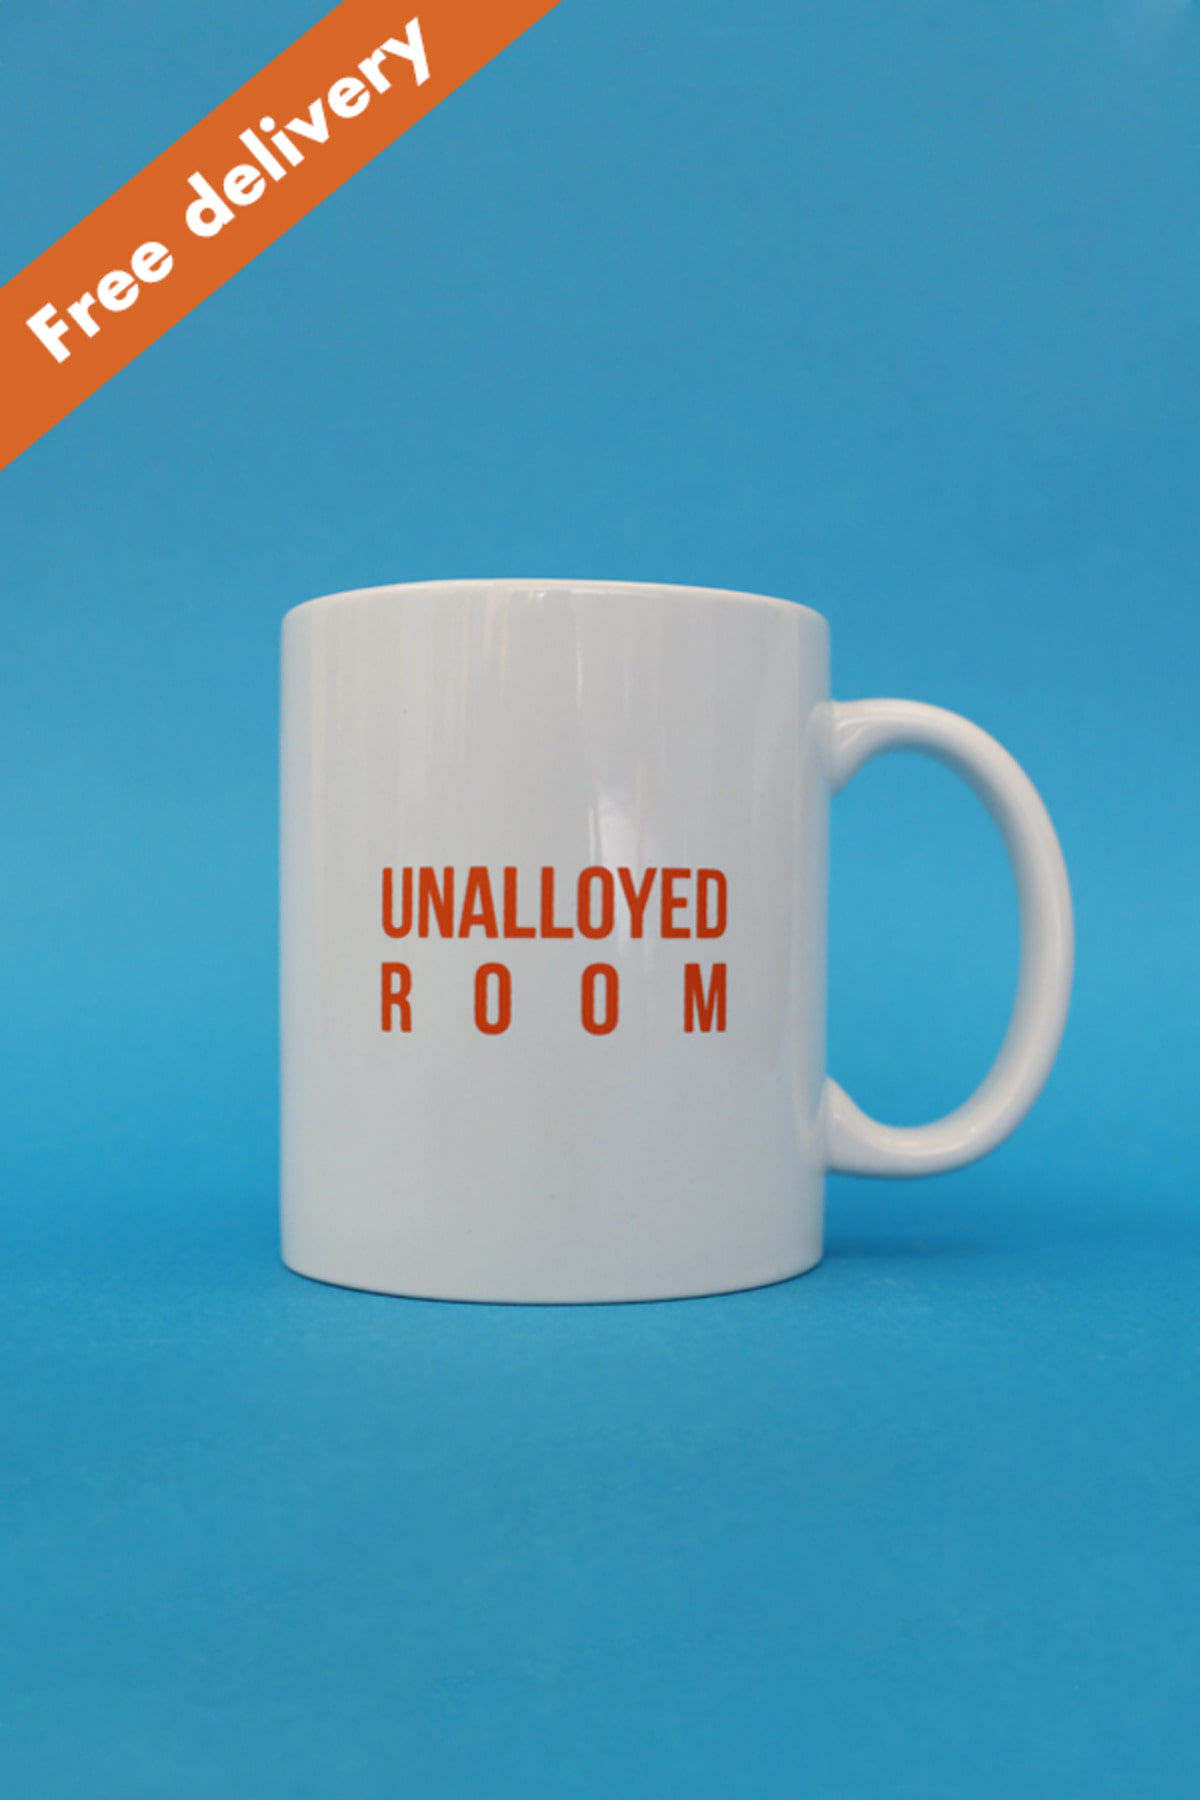 [GOODS] UNALLOYED ROOM MUG / ORANGE